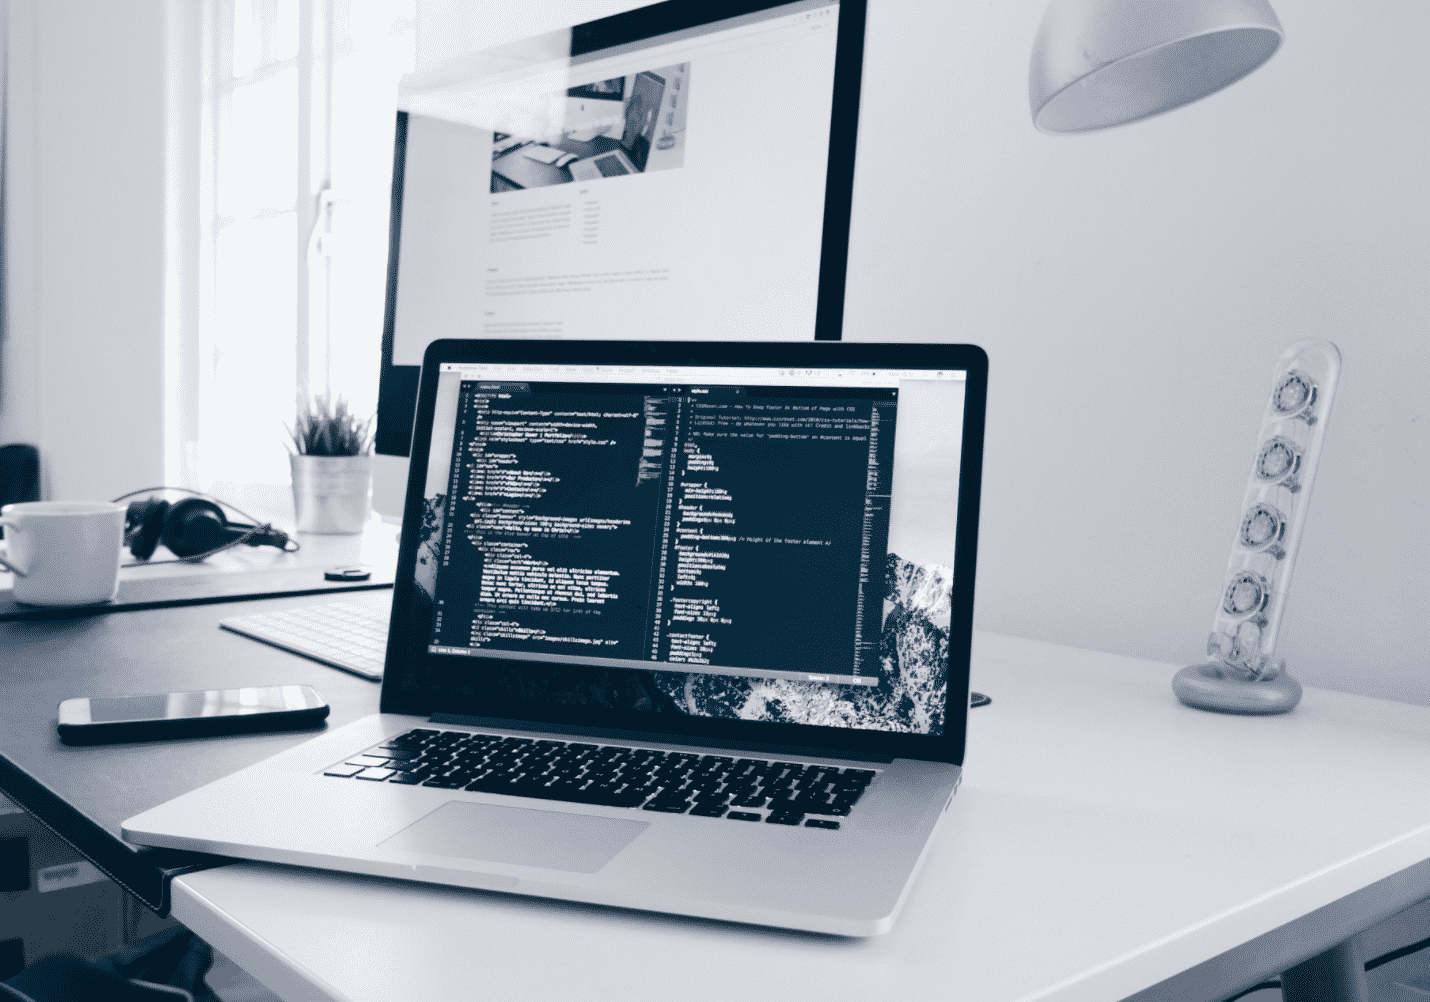 10 Remote Work Productivity Hacks for Your MacBook